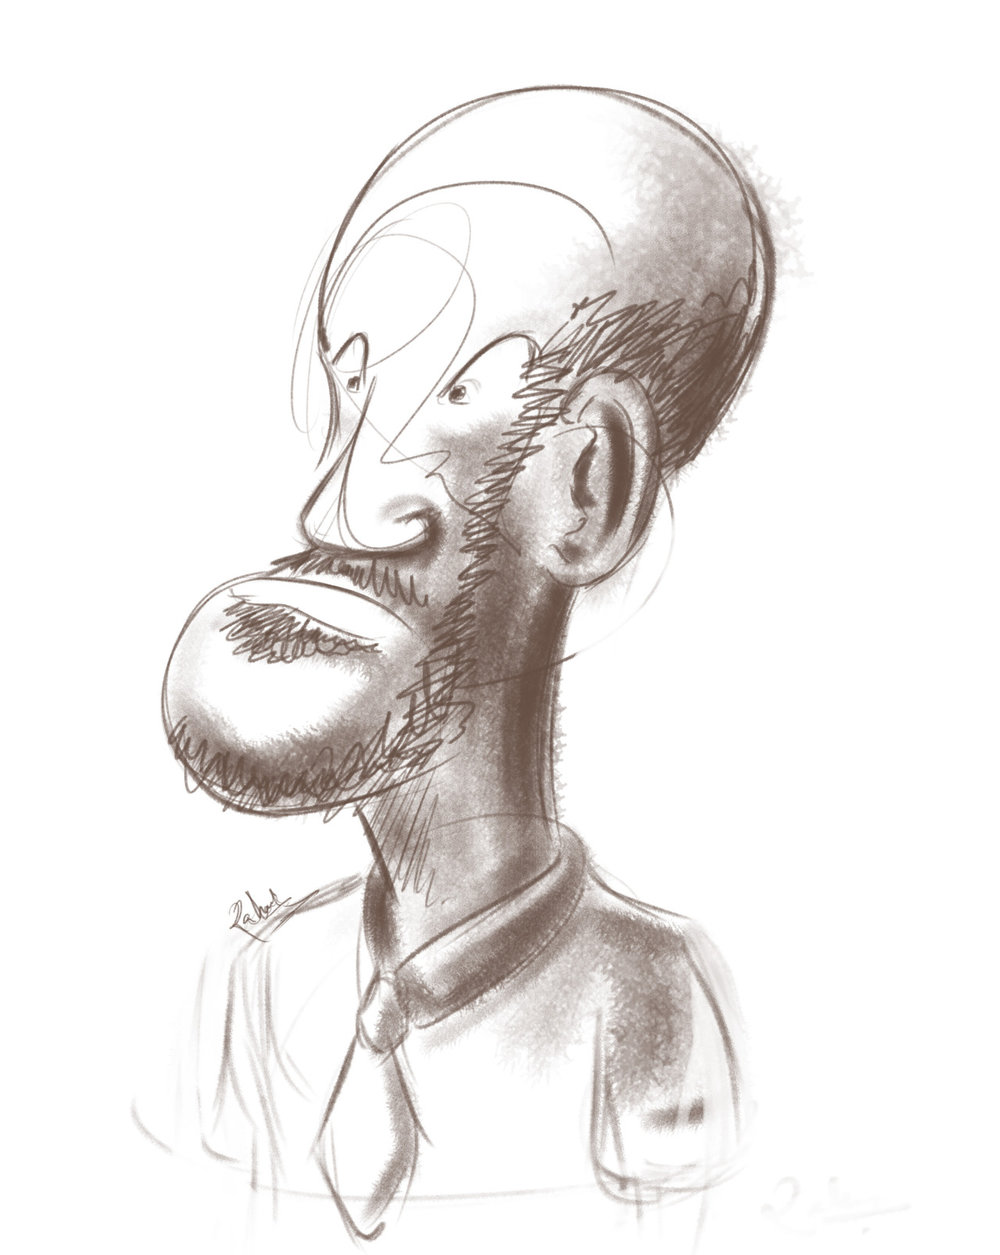 Caricature_Sketch.jpg